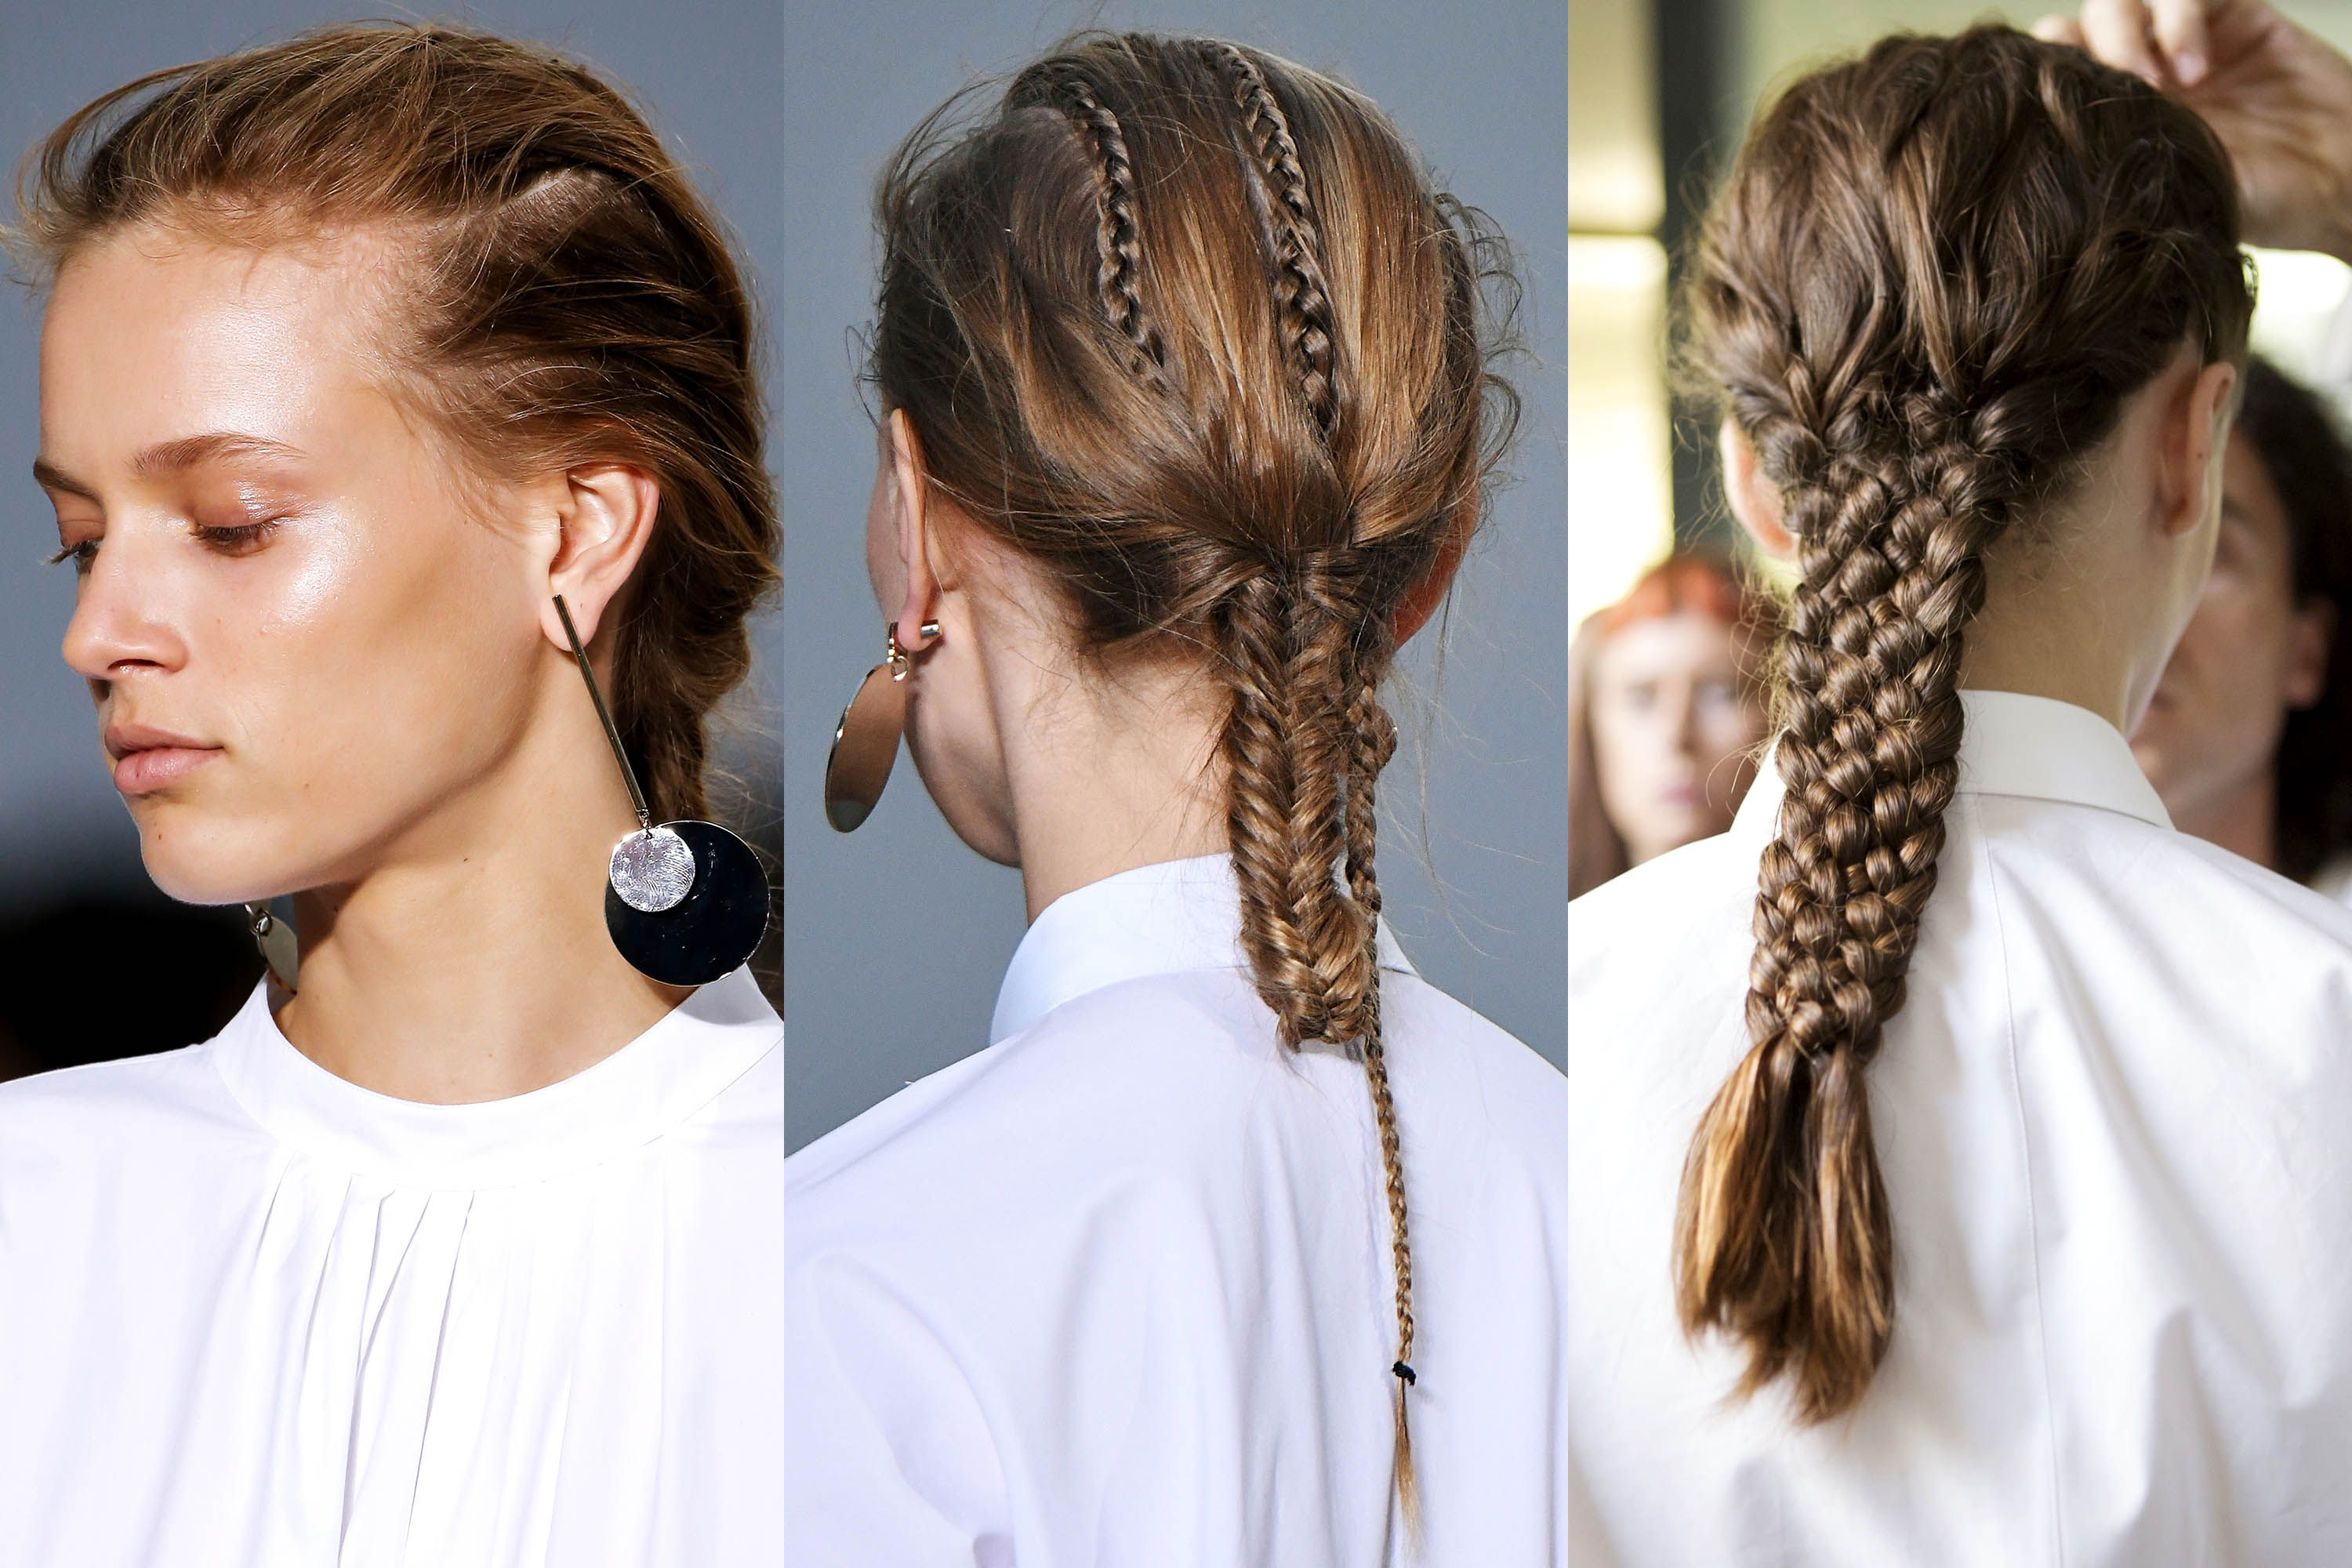 Fashion style Braided spring hairstyles inspired from the runway for girls